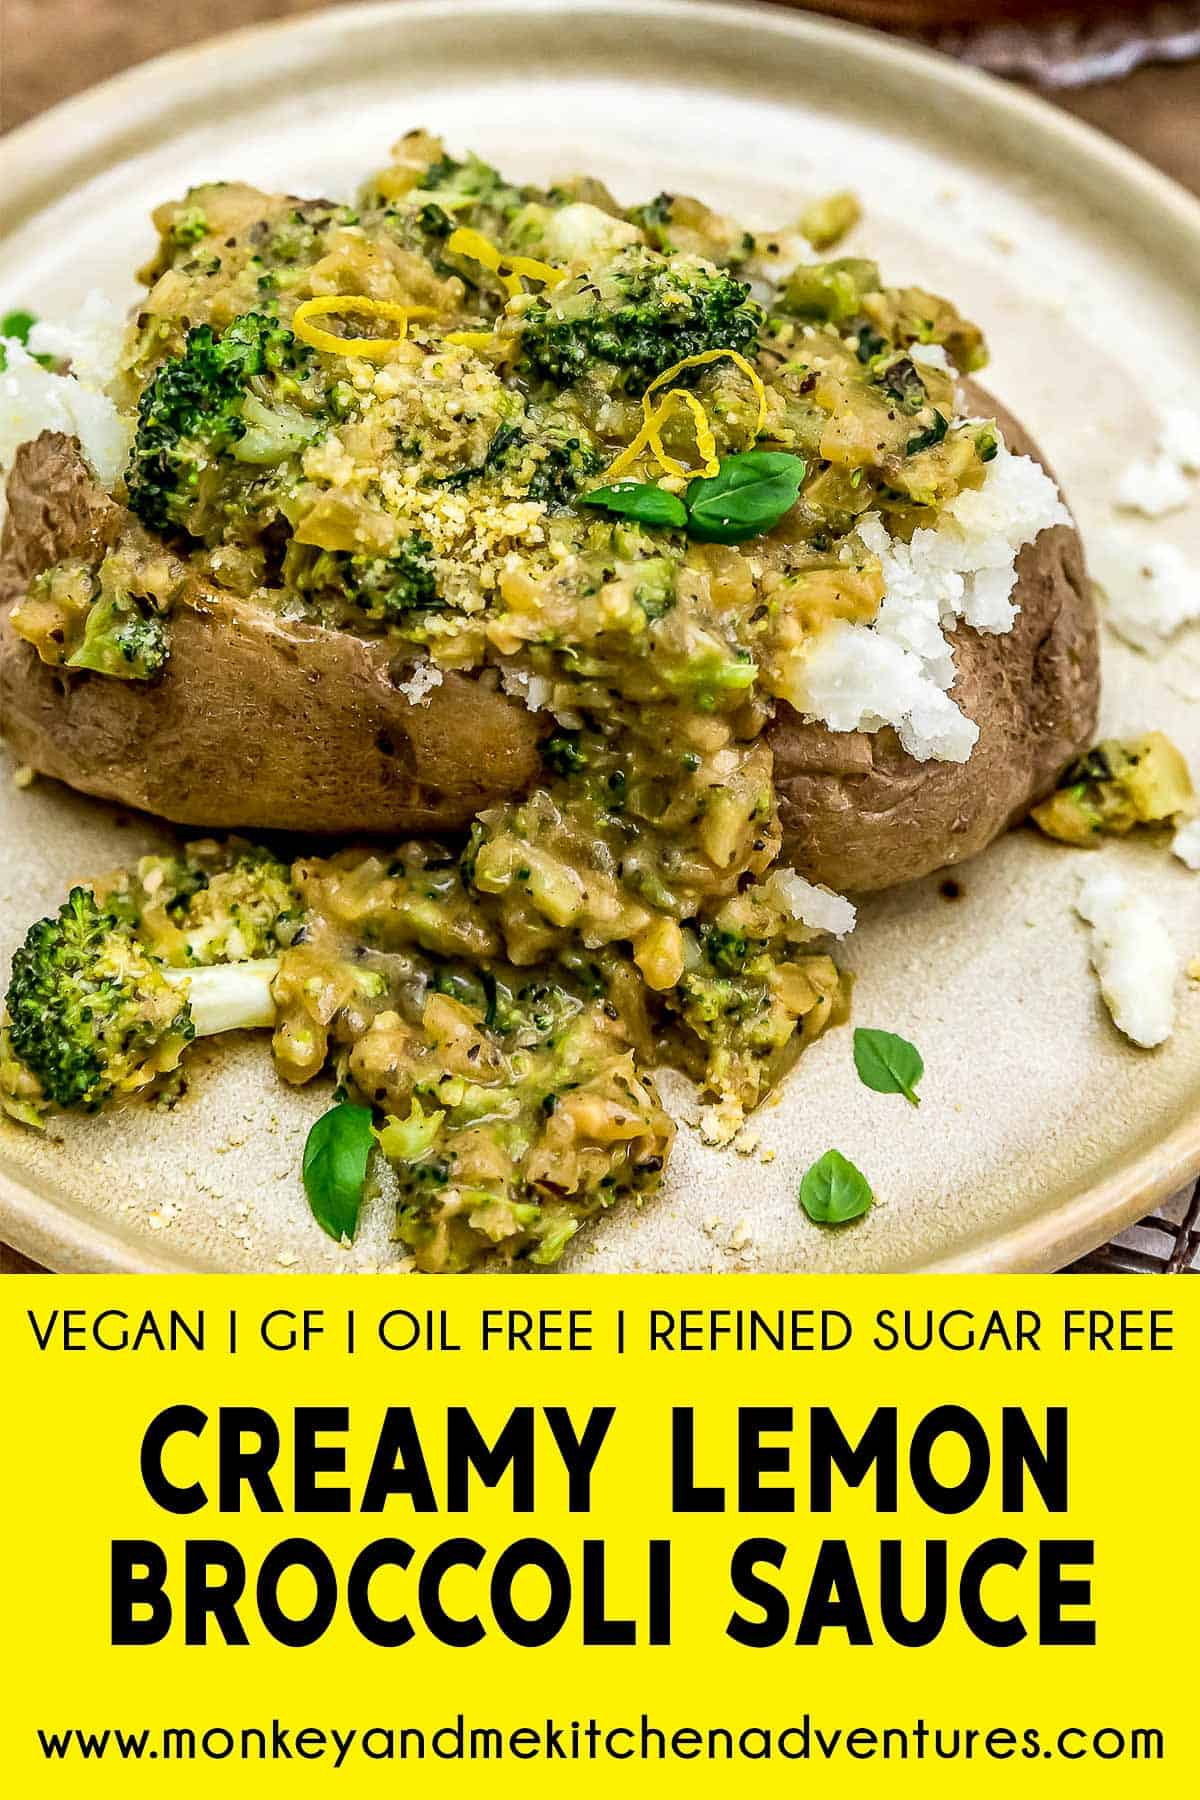 Creamy Lemon Broccoli Sauce with text description